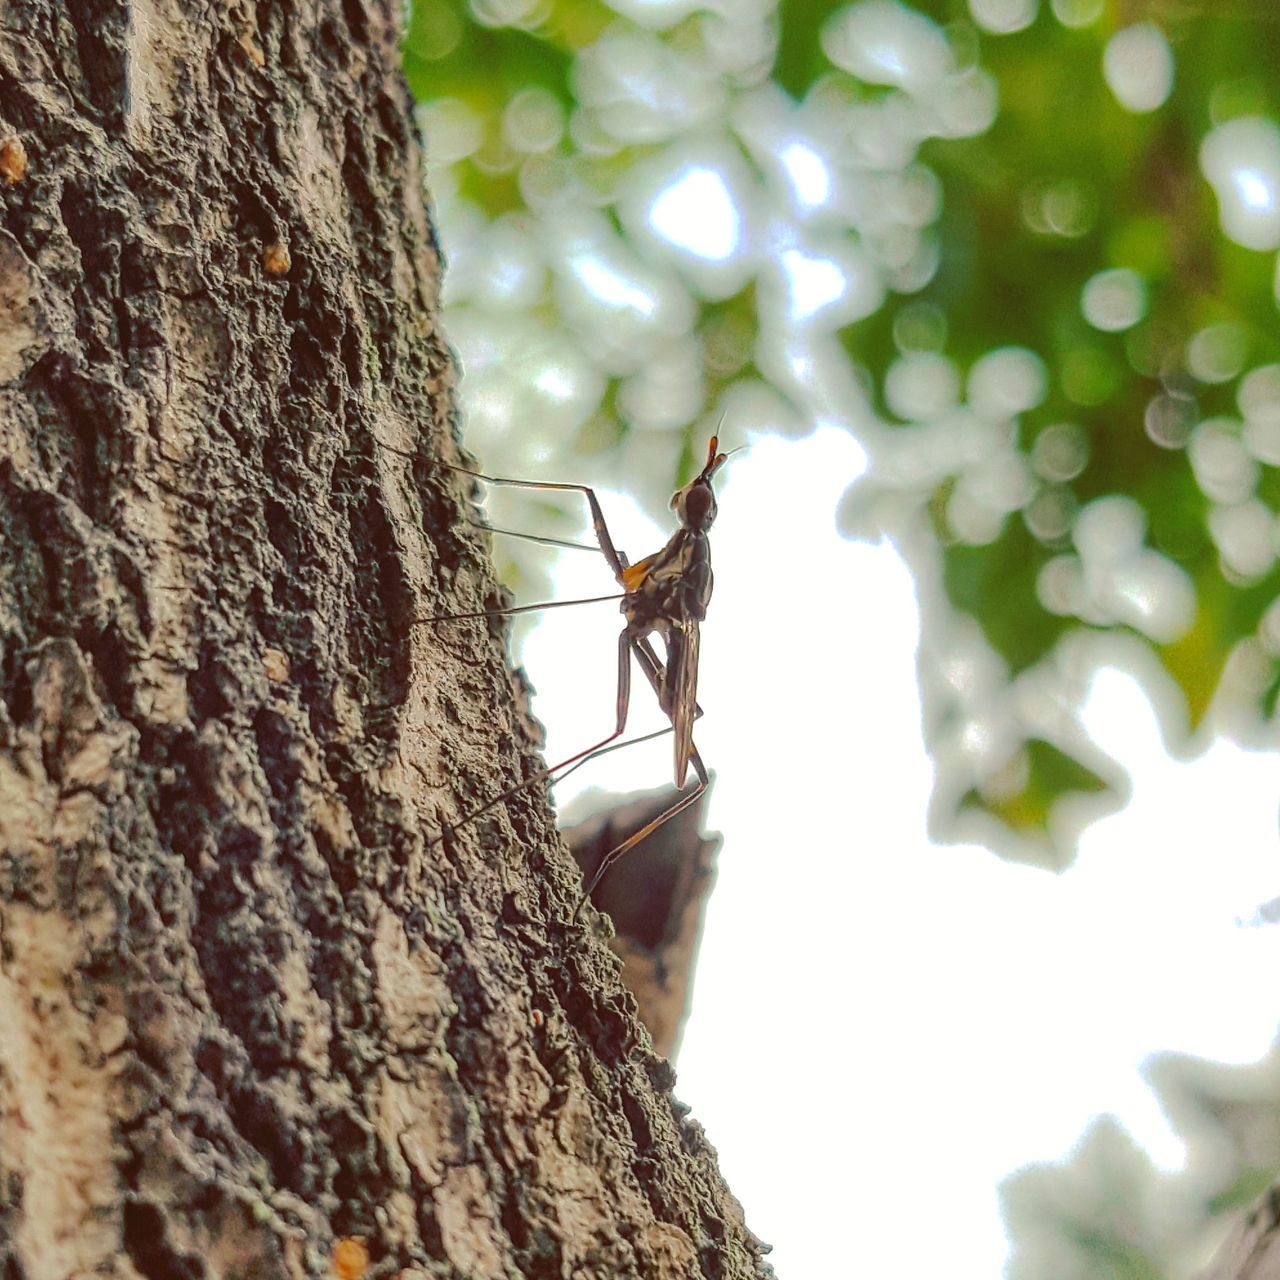 insect, tree trunk, tree, animals in the wild, one animal, animal themes, nature, no people, day, animal wildlife, close-up, outdoors, climbing